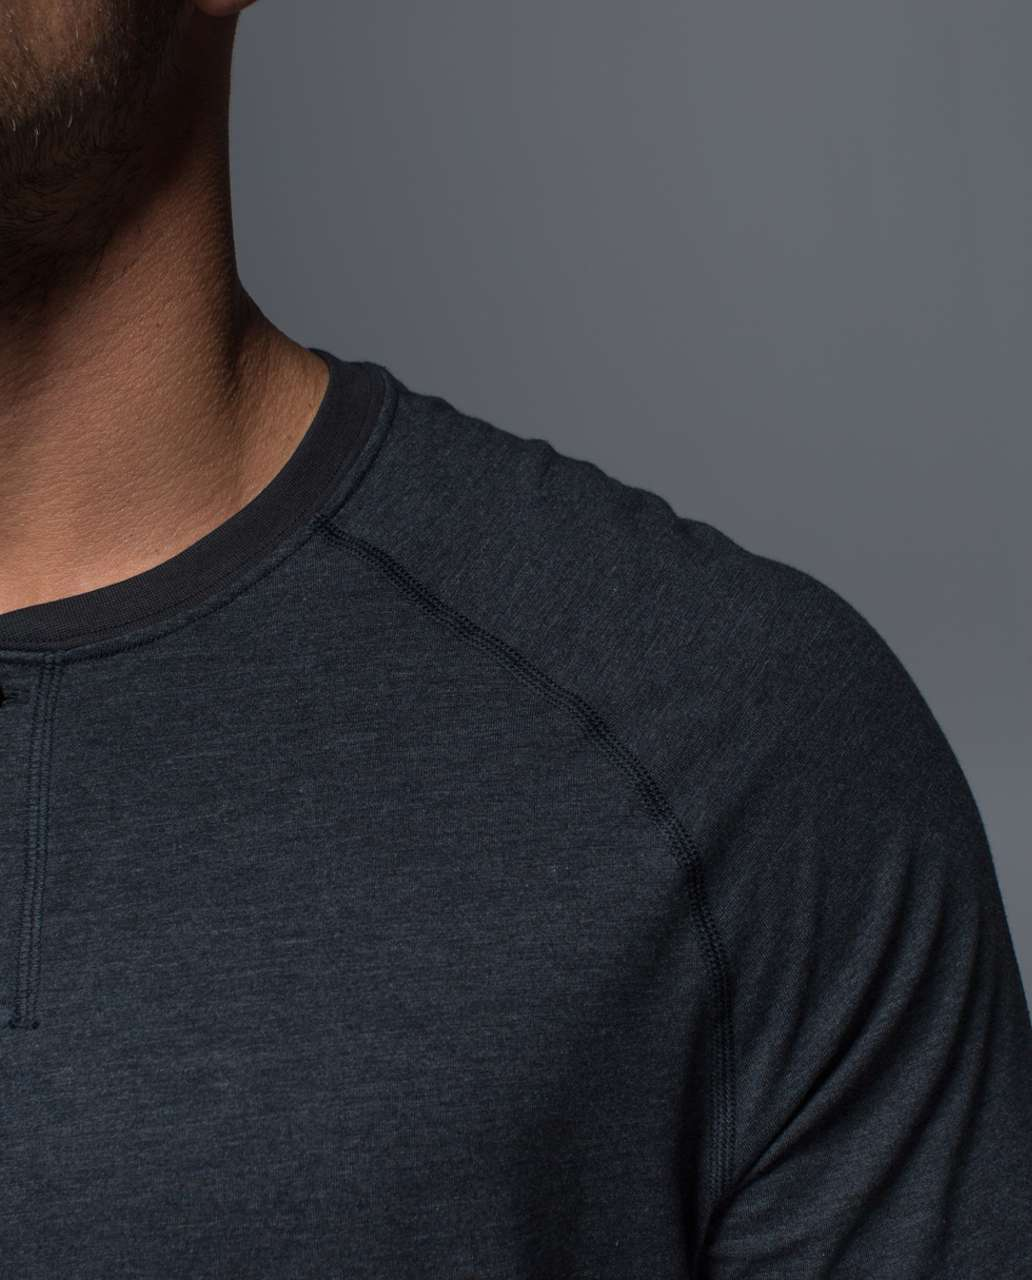 Lululemon Rival Long Sleeve - Heathered Black / Black